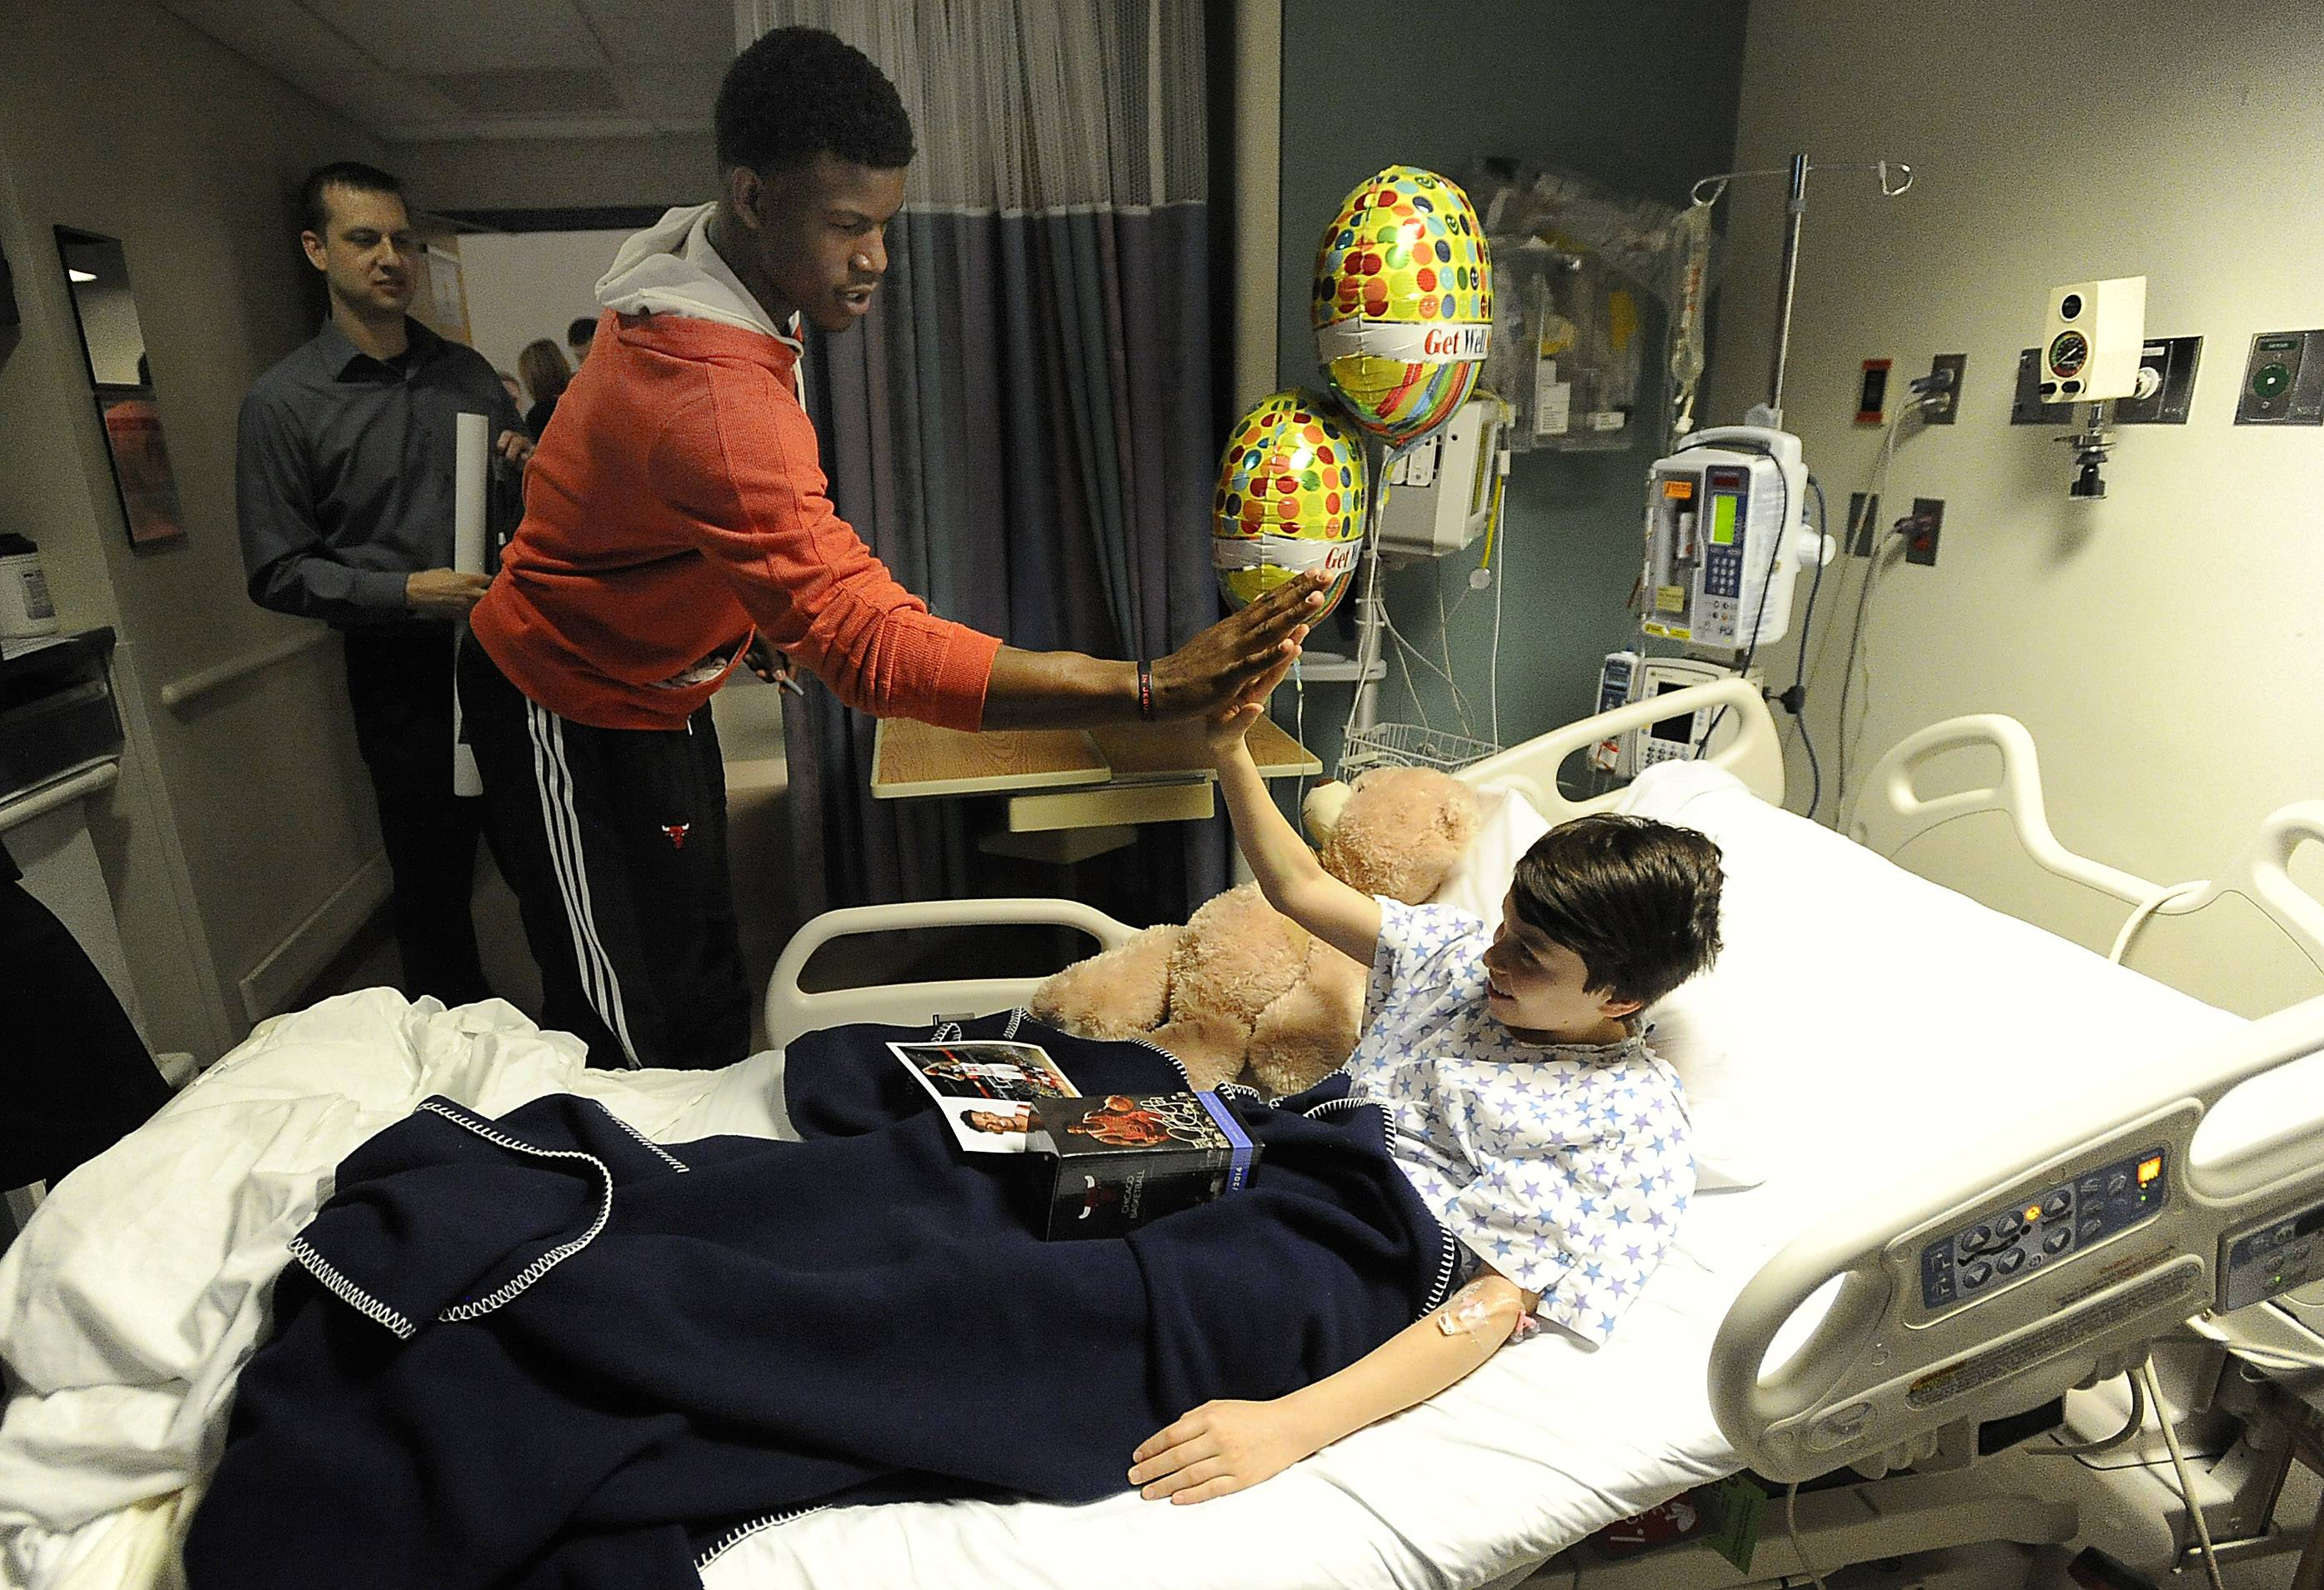 Mark Welsh/mwelsh@dailyherald.comChicago Bulls guard Jimmy Butler visits with Fredy Montenadro, 14, of Mundelein at Lutheran General Advocate Children's Hospital in Park Ridge on Thursday.